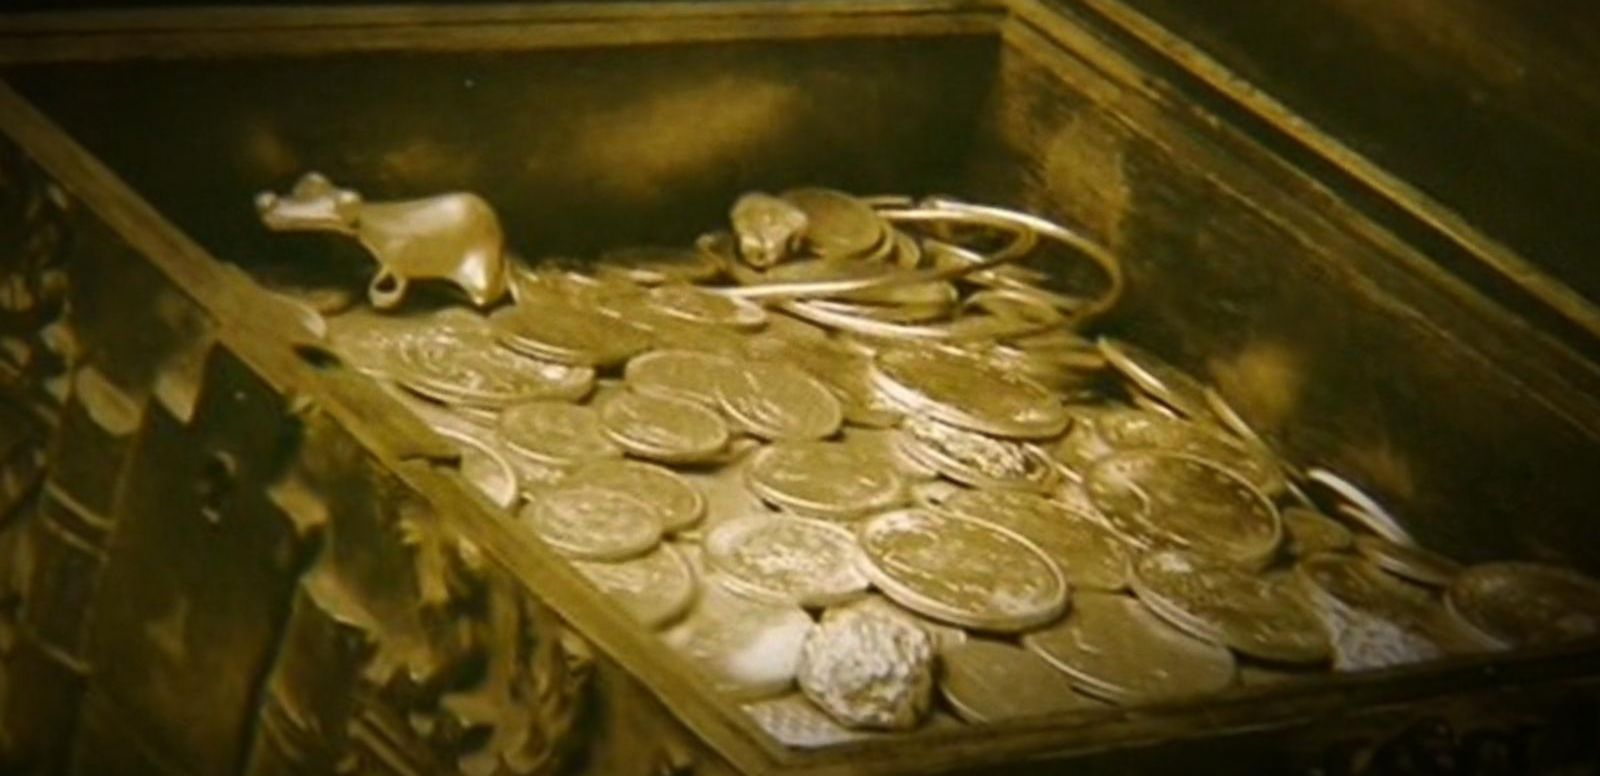 VIDEO: Rich Man's Treasure Hunt May End Up a Hoax